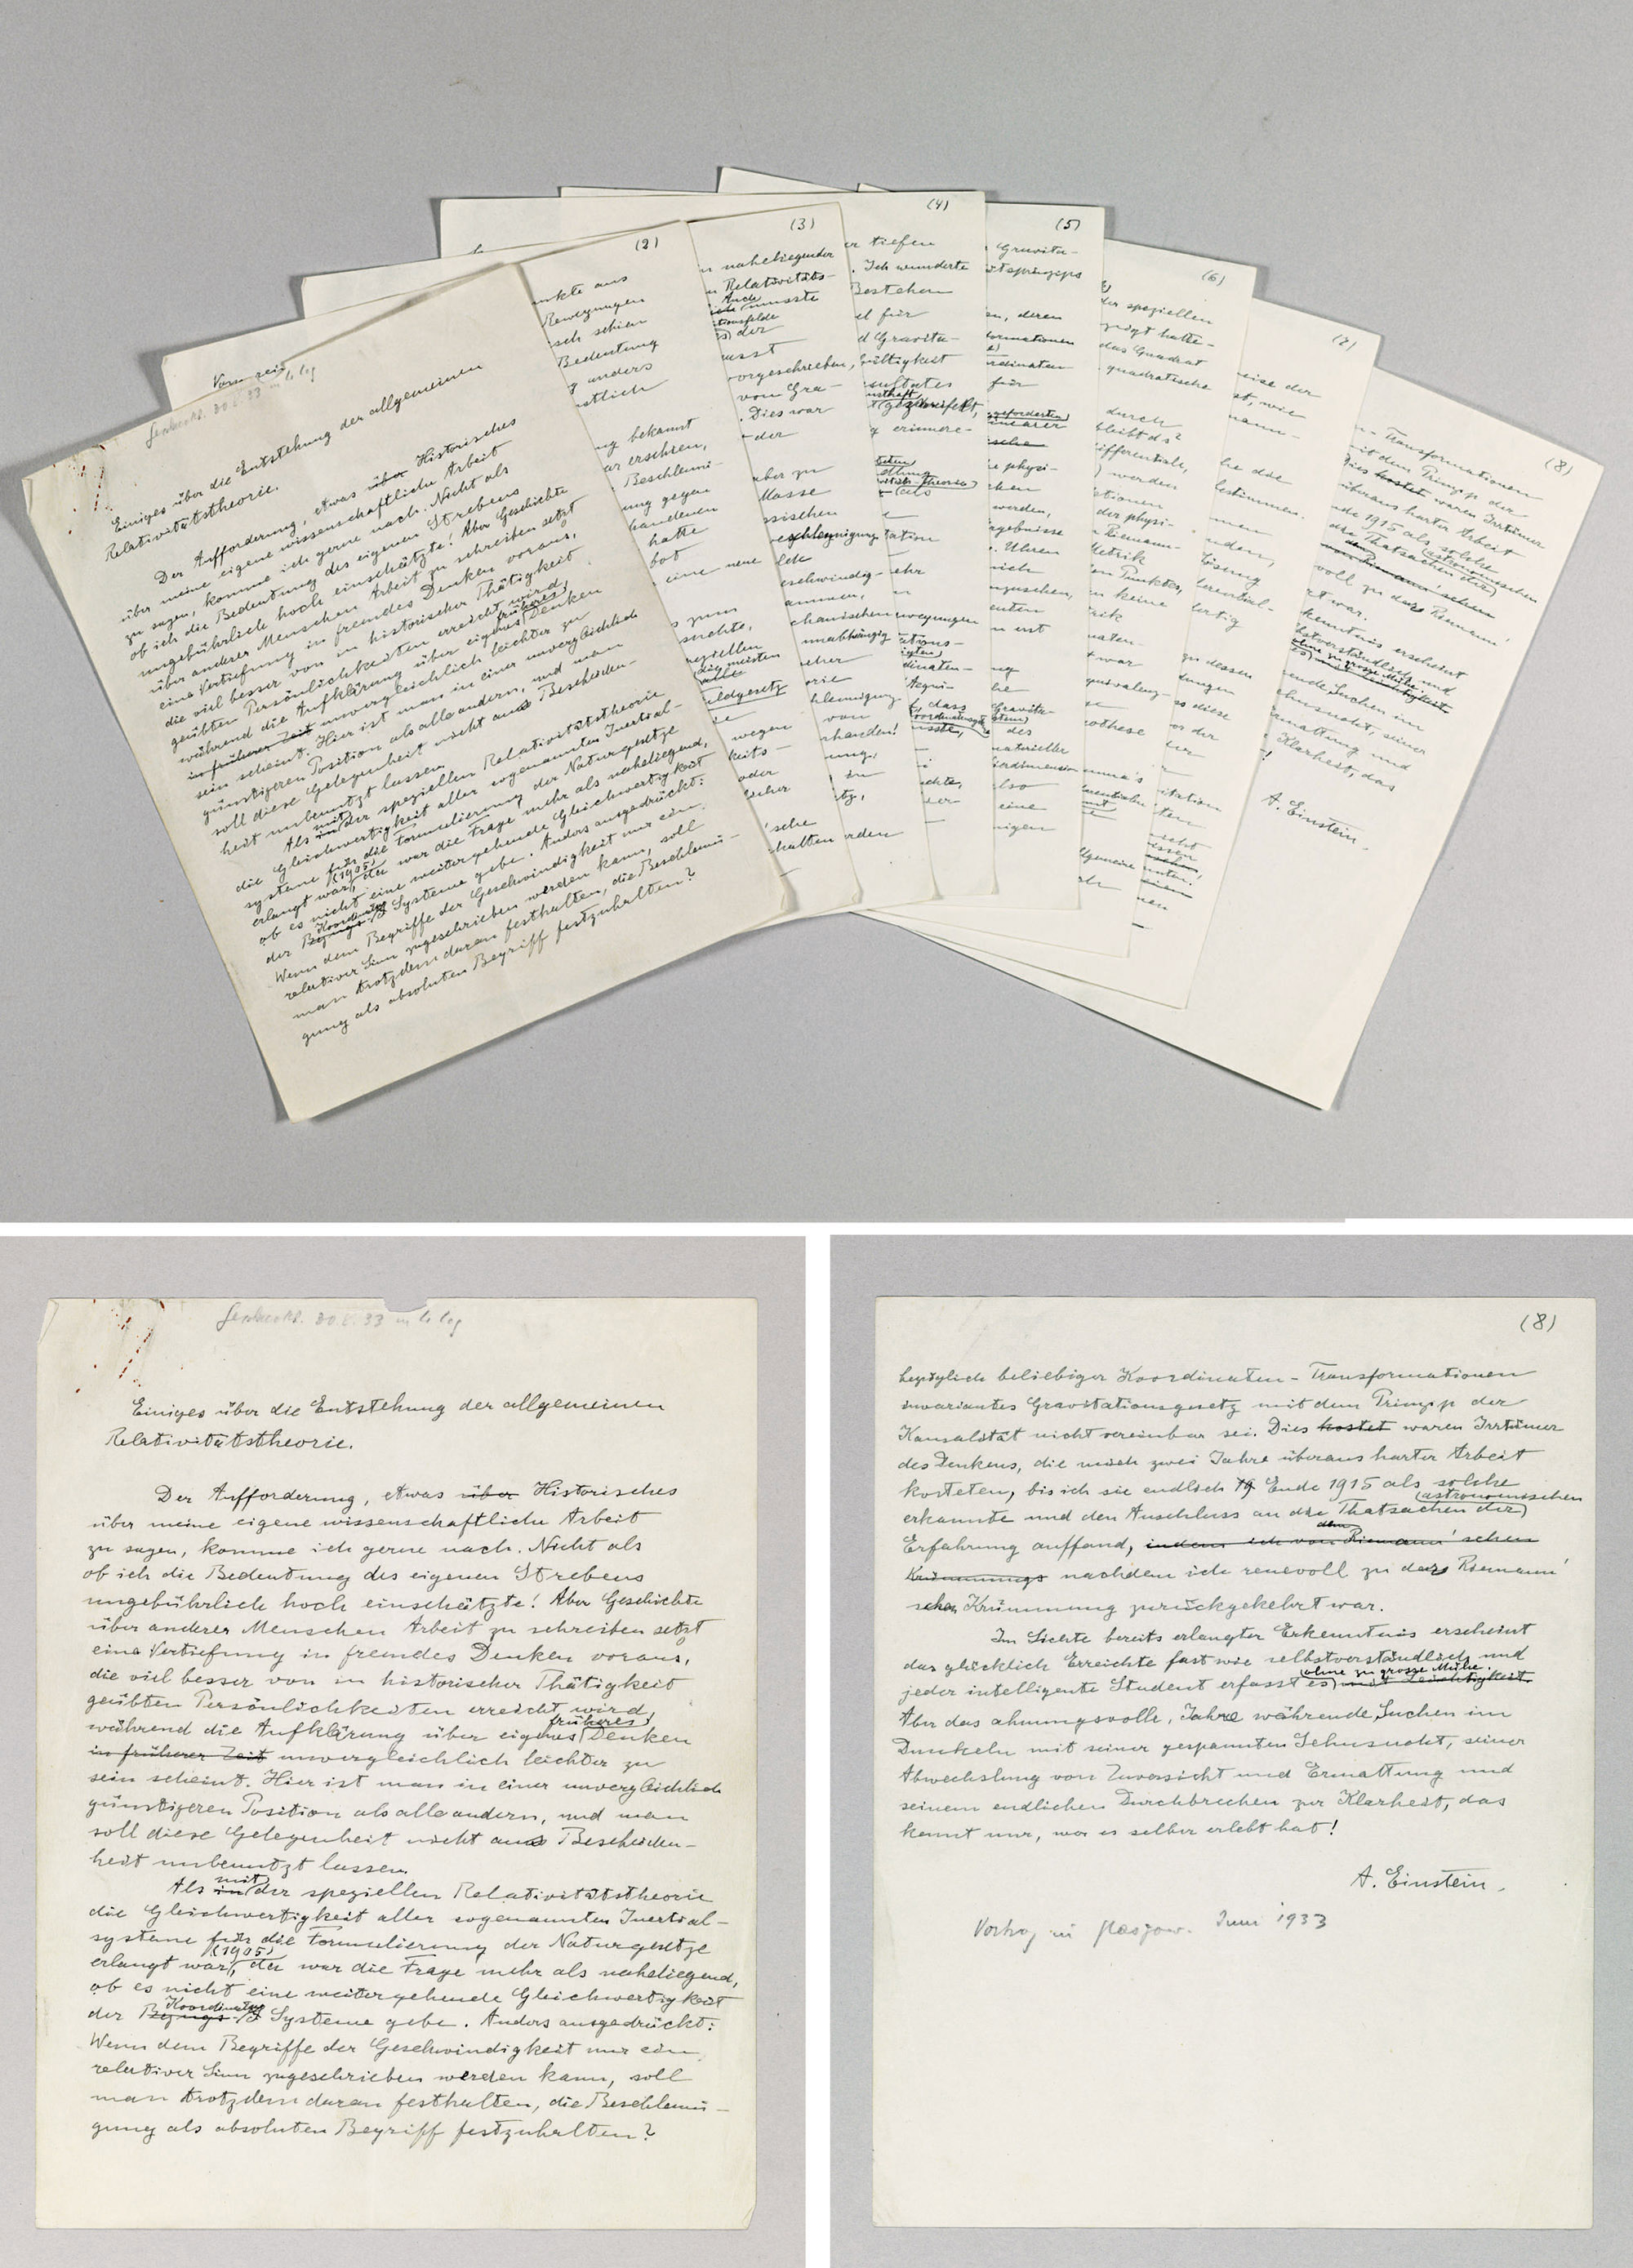 """EINSTEIN, Albert (1879-1955). Autograph manuscript signed (""""A. Einstein"""" on last page), constituting Einstein's lecture """"The Origin of the General Theory of Relativity"""" (""""Einiges über die Entstehung der allgemeinen Relativitätstheorie""""), delivered as the first George A. Gibson Lecture at the University of Glasgow, 20 June 1933. A working draft with extensive deletions and interlinear additions. No place, undated, but ca. June 1933."""